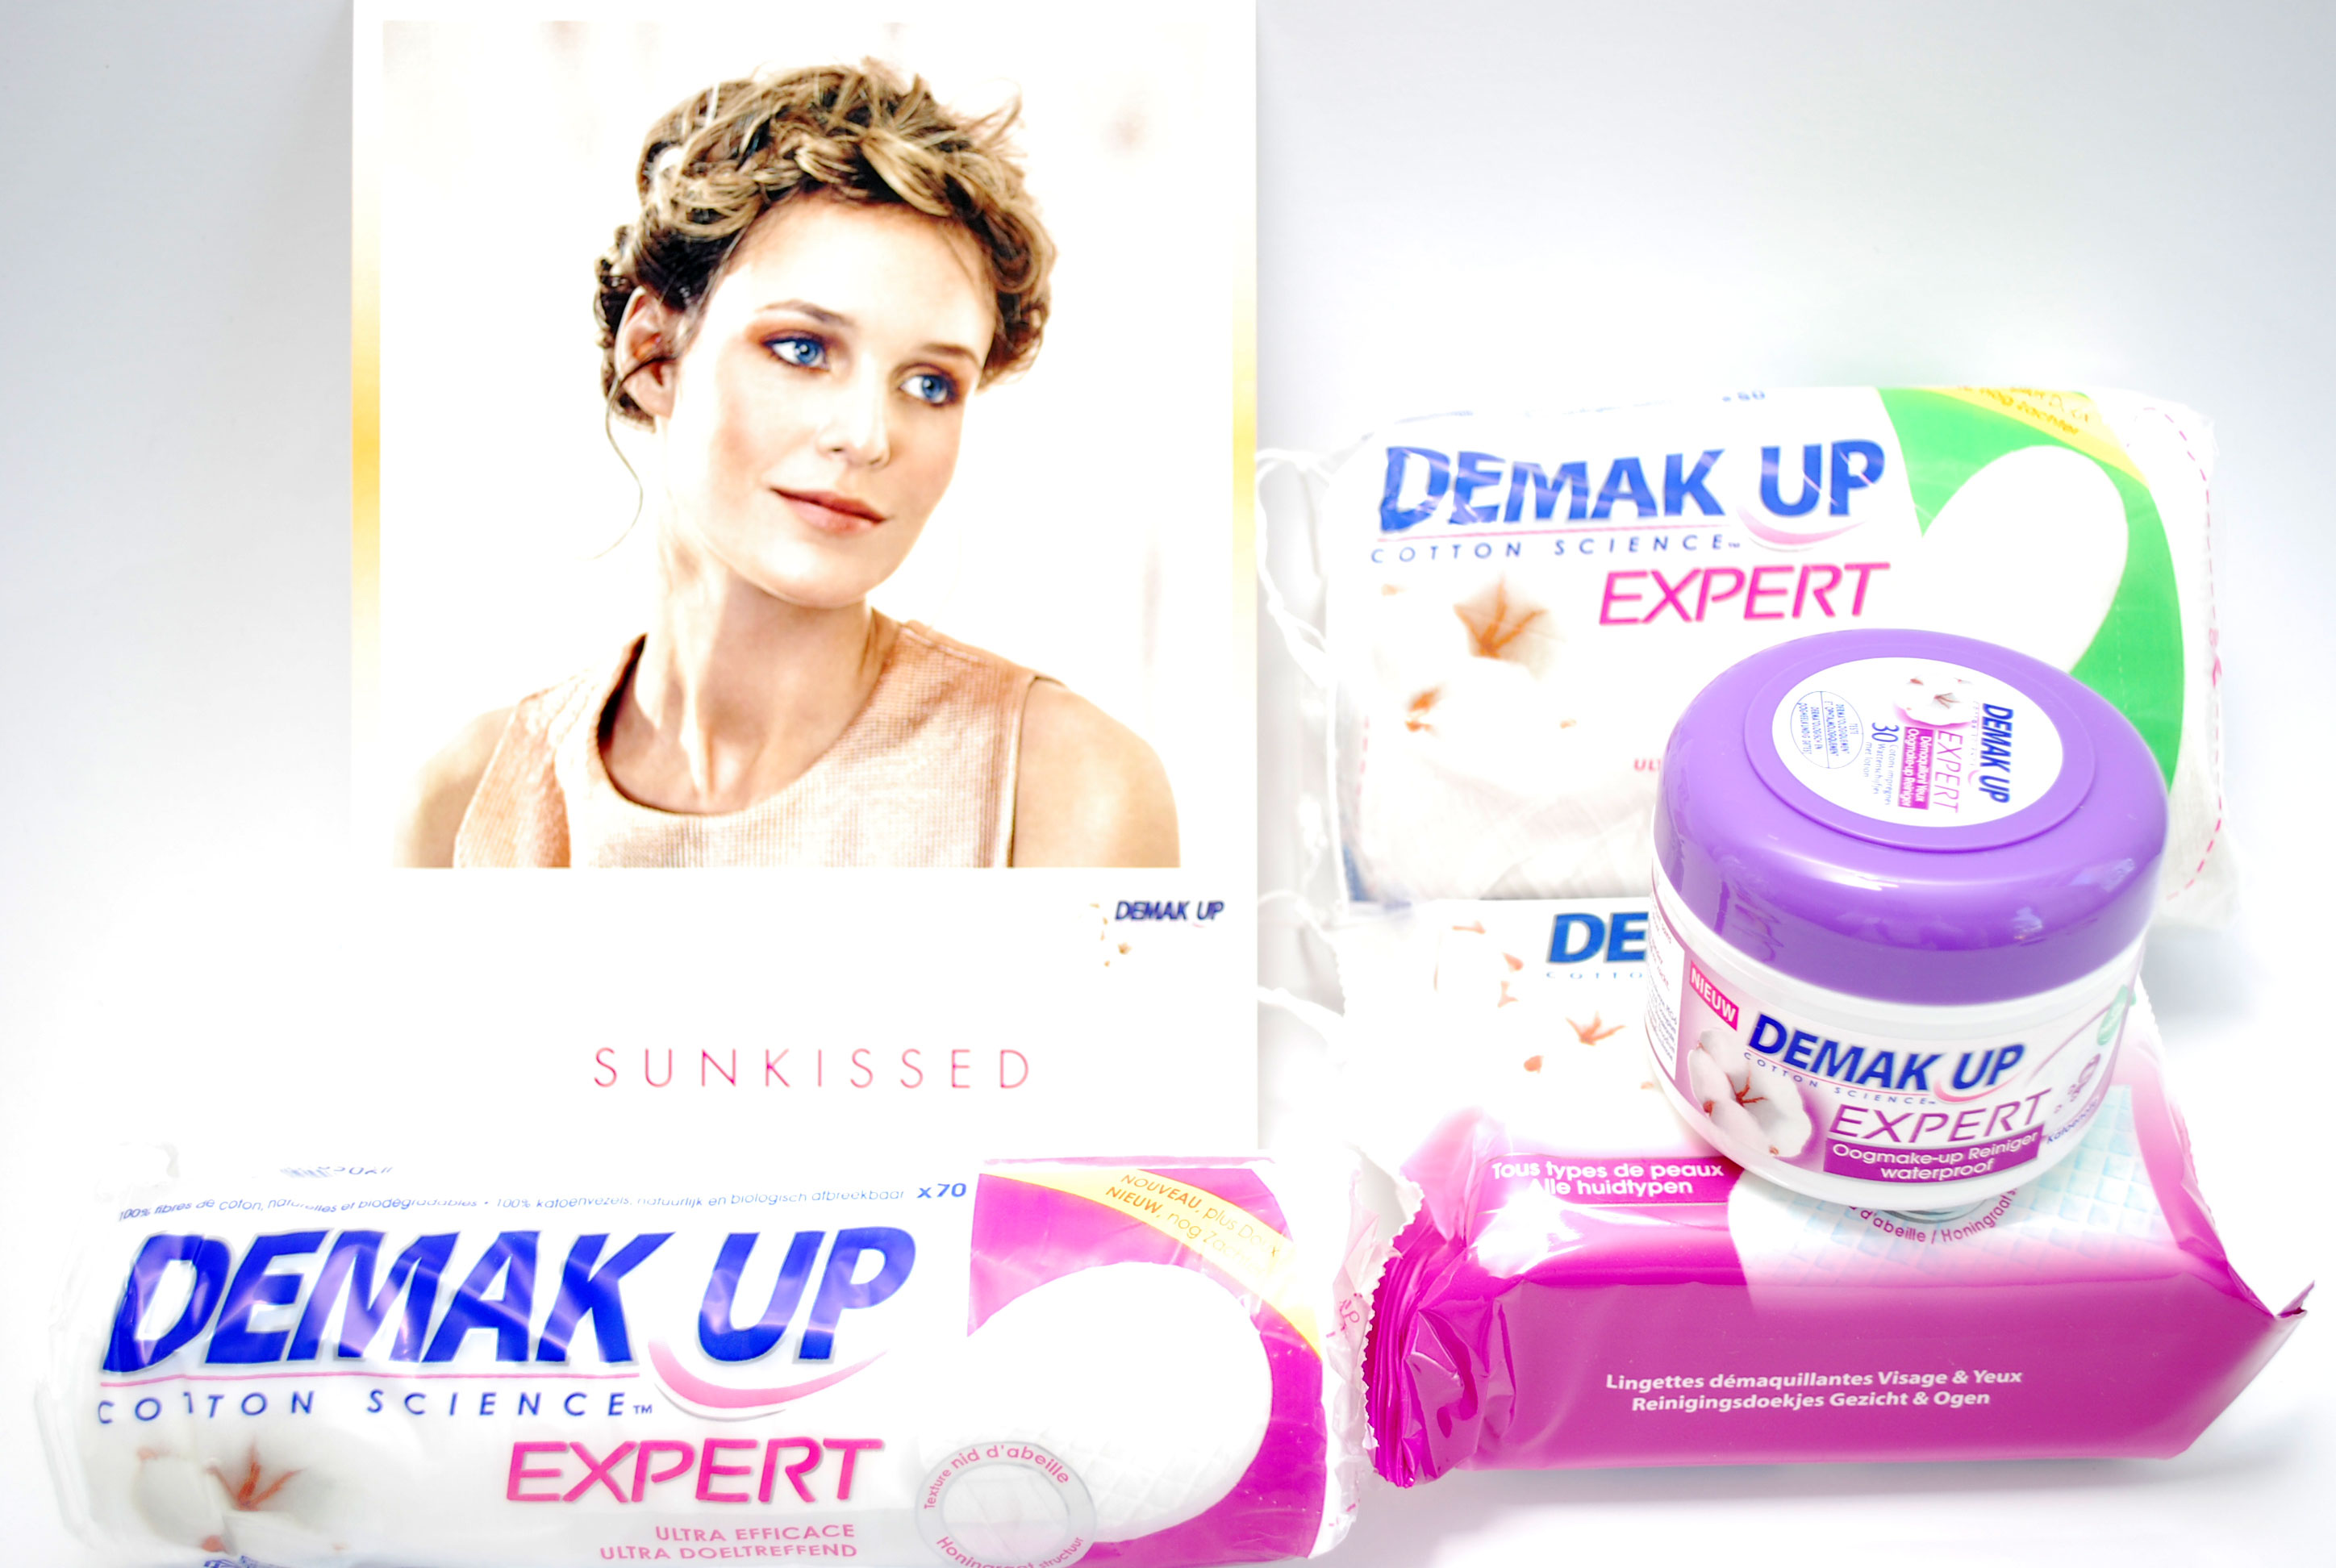 demak up expert lijn facelook review